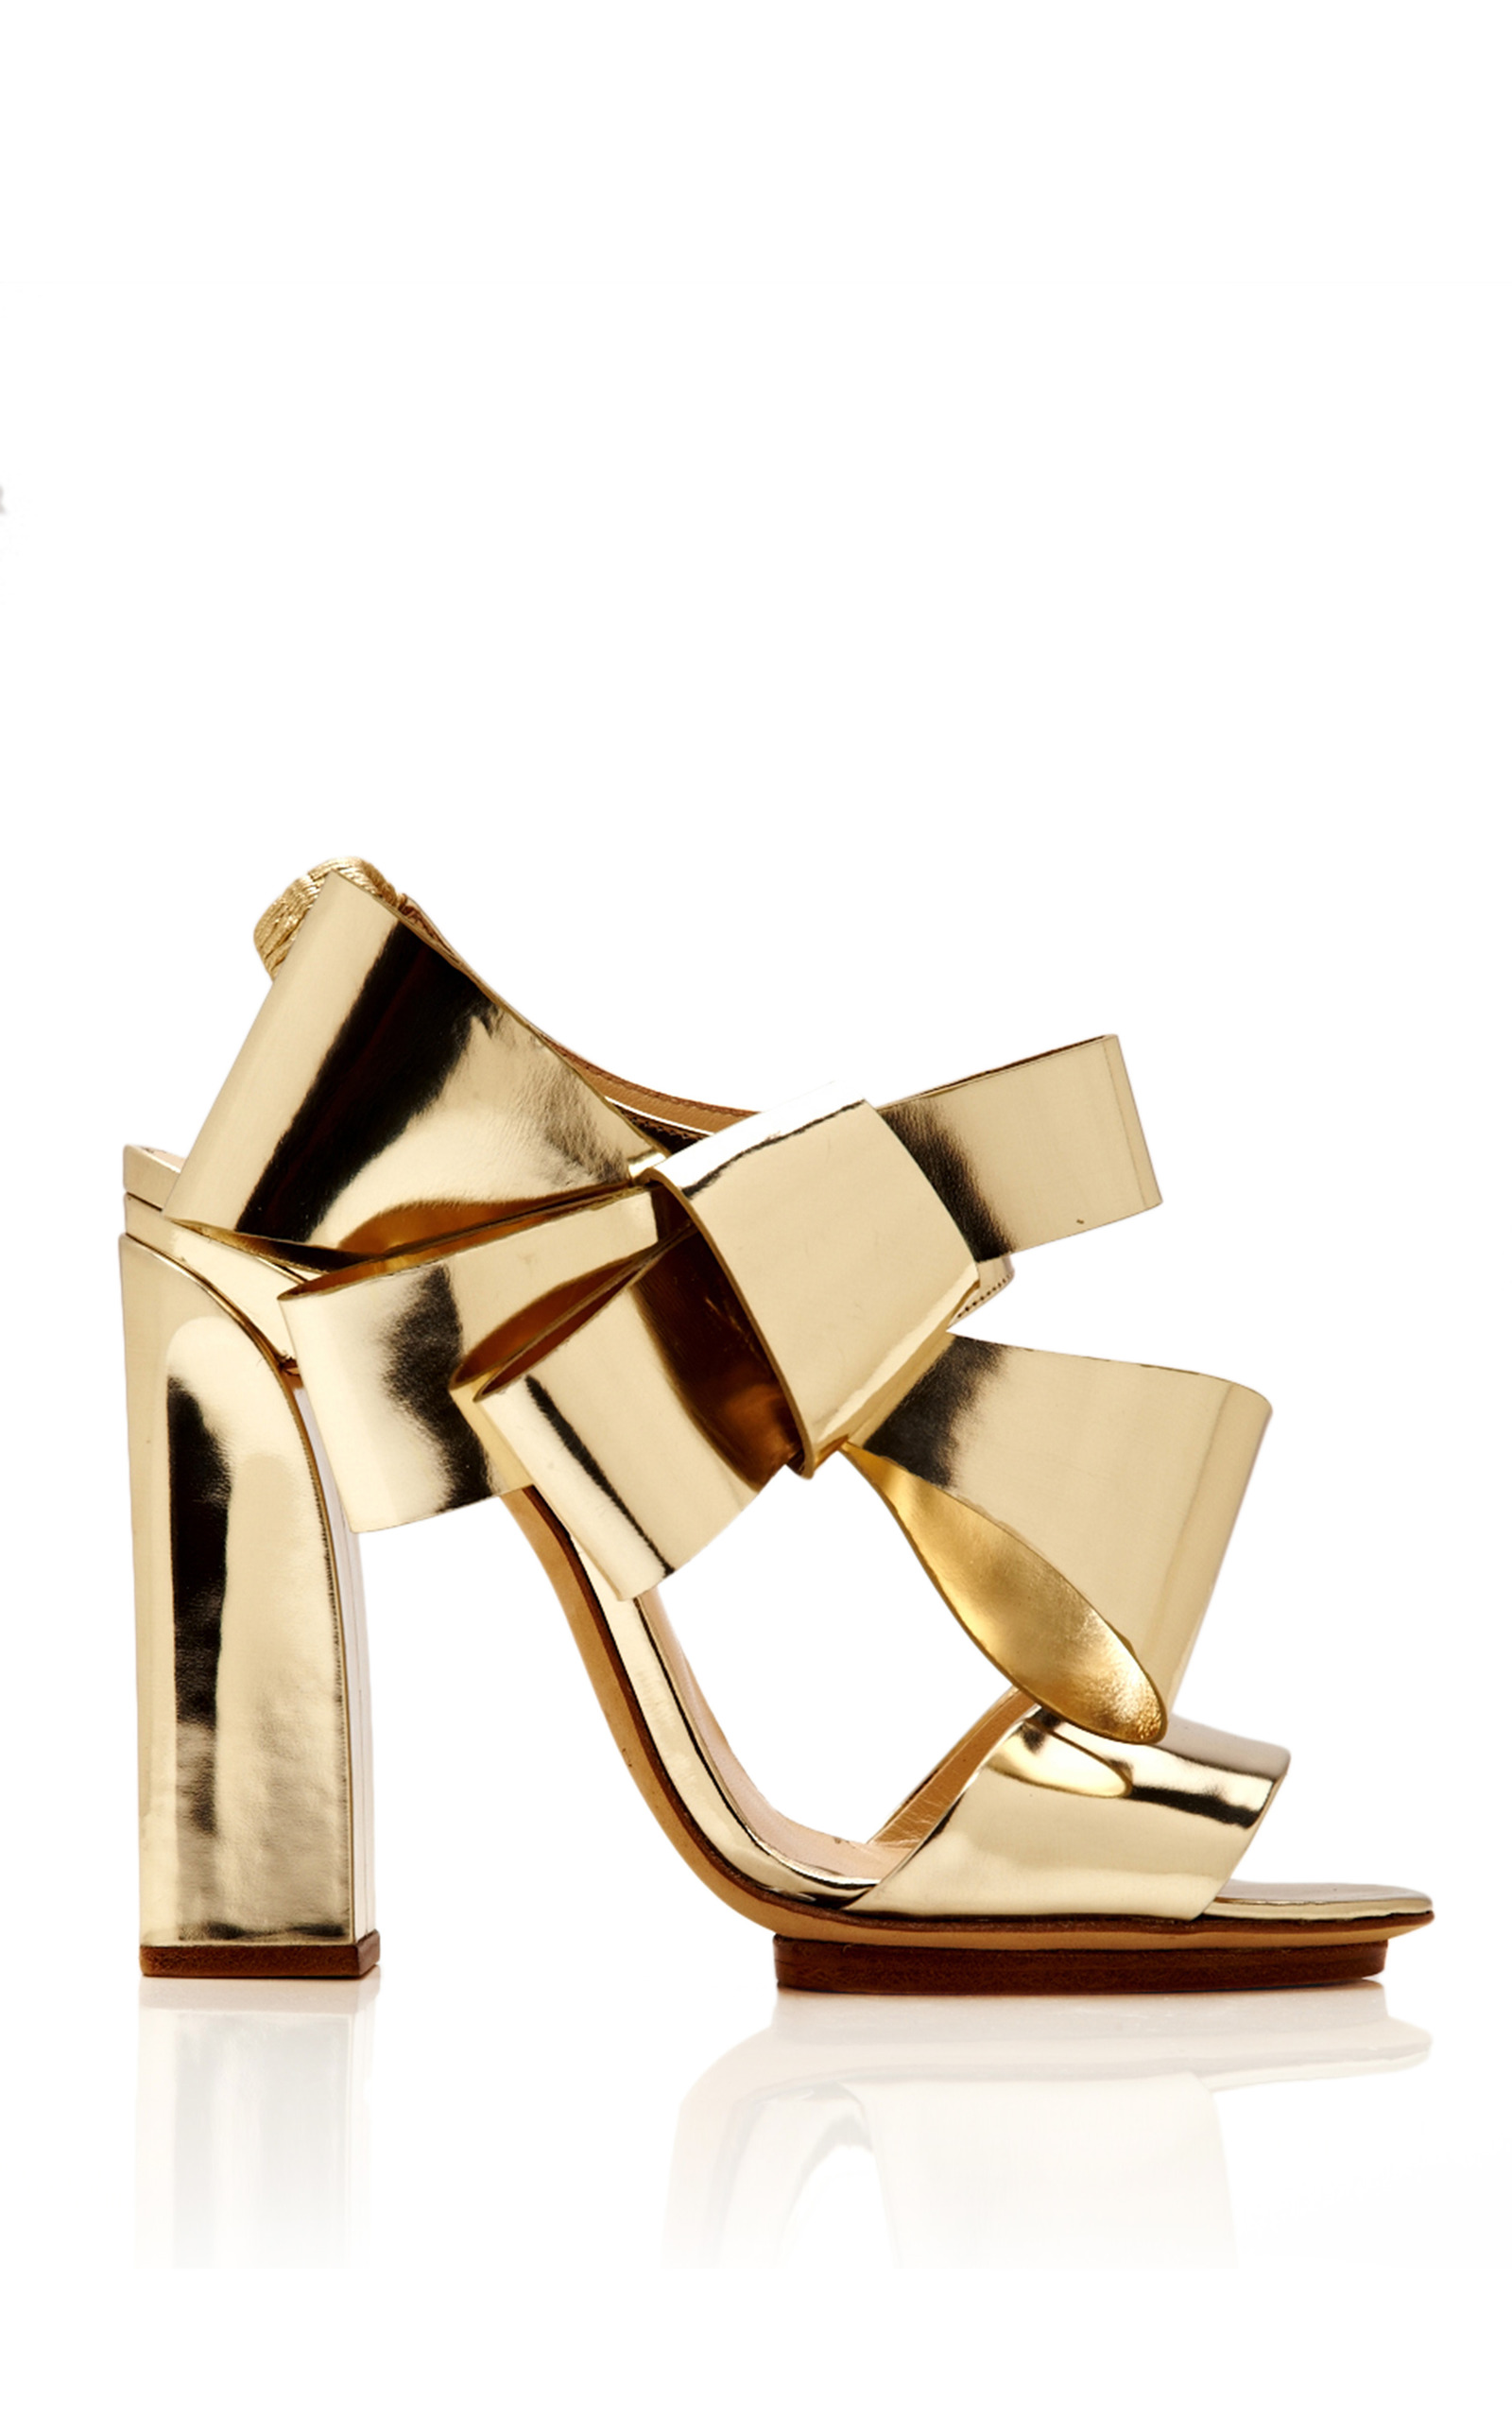 clearance get to buy Delpozo Metallic Slingback Sandals clearance cheapest price clearance visit new EtKDiTBH